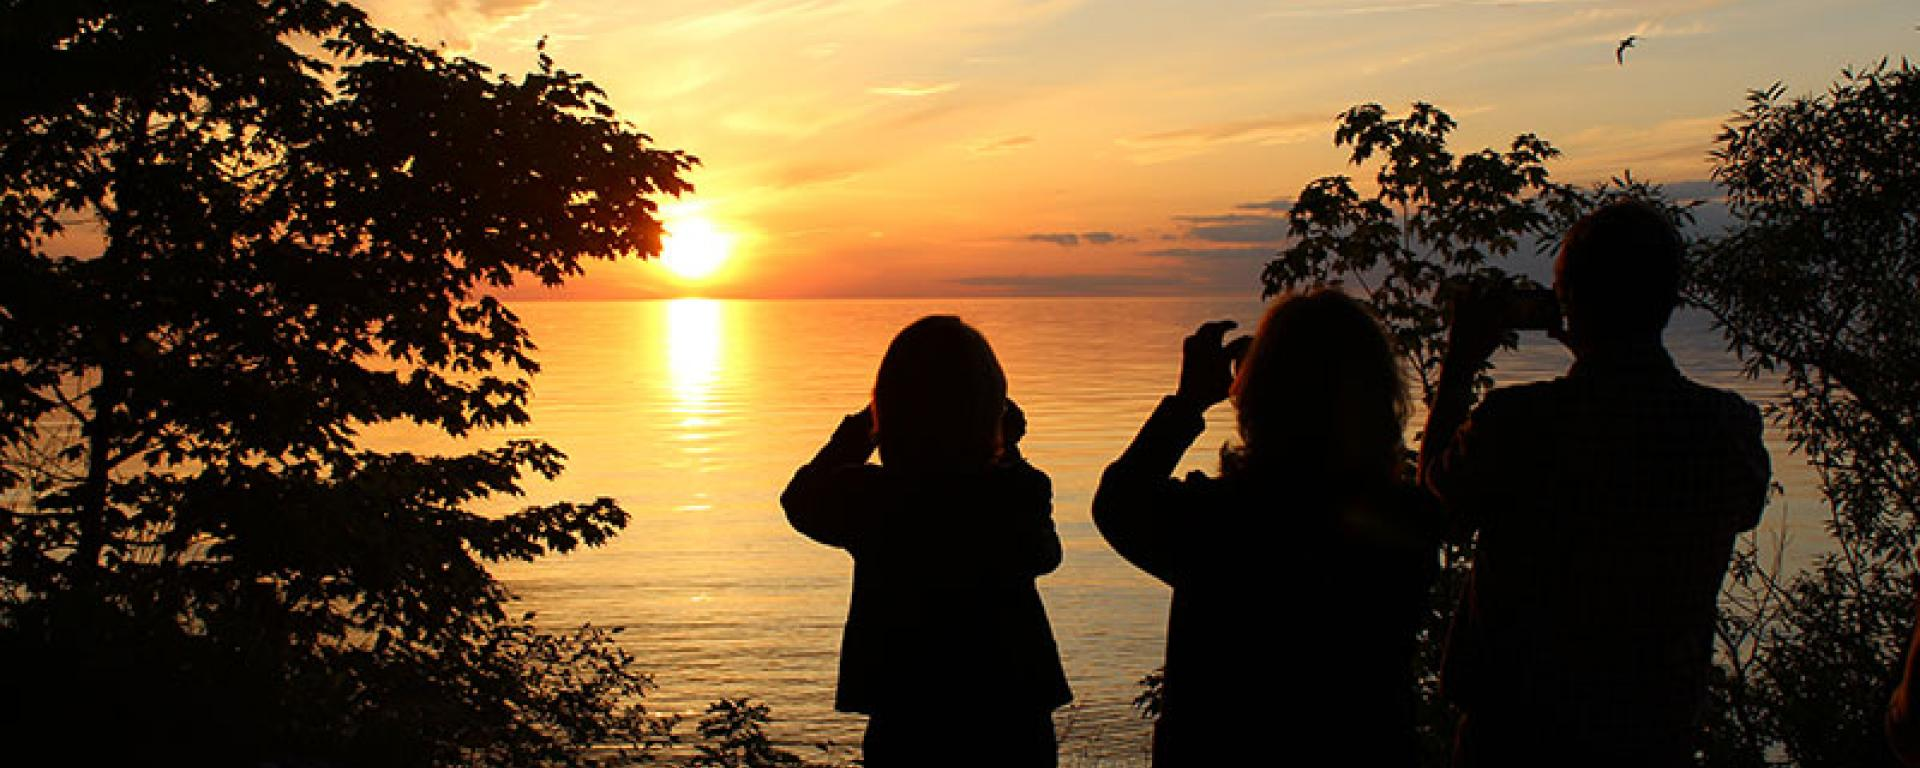 3 silhouettes of people taking photos of the Oswego sunset